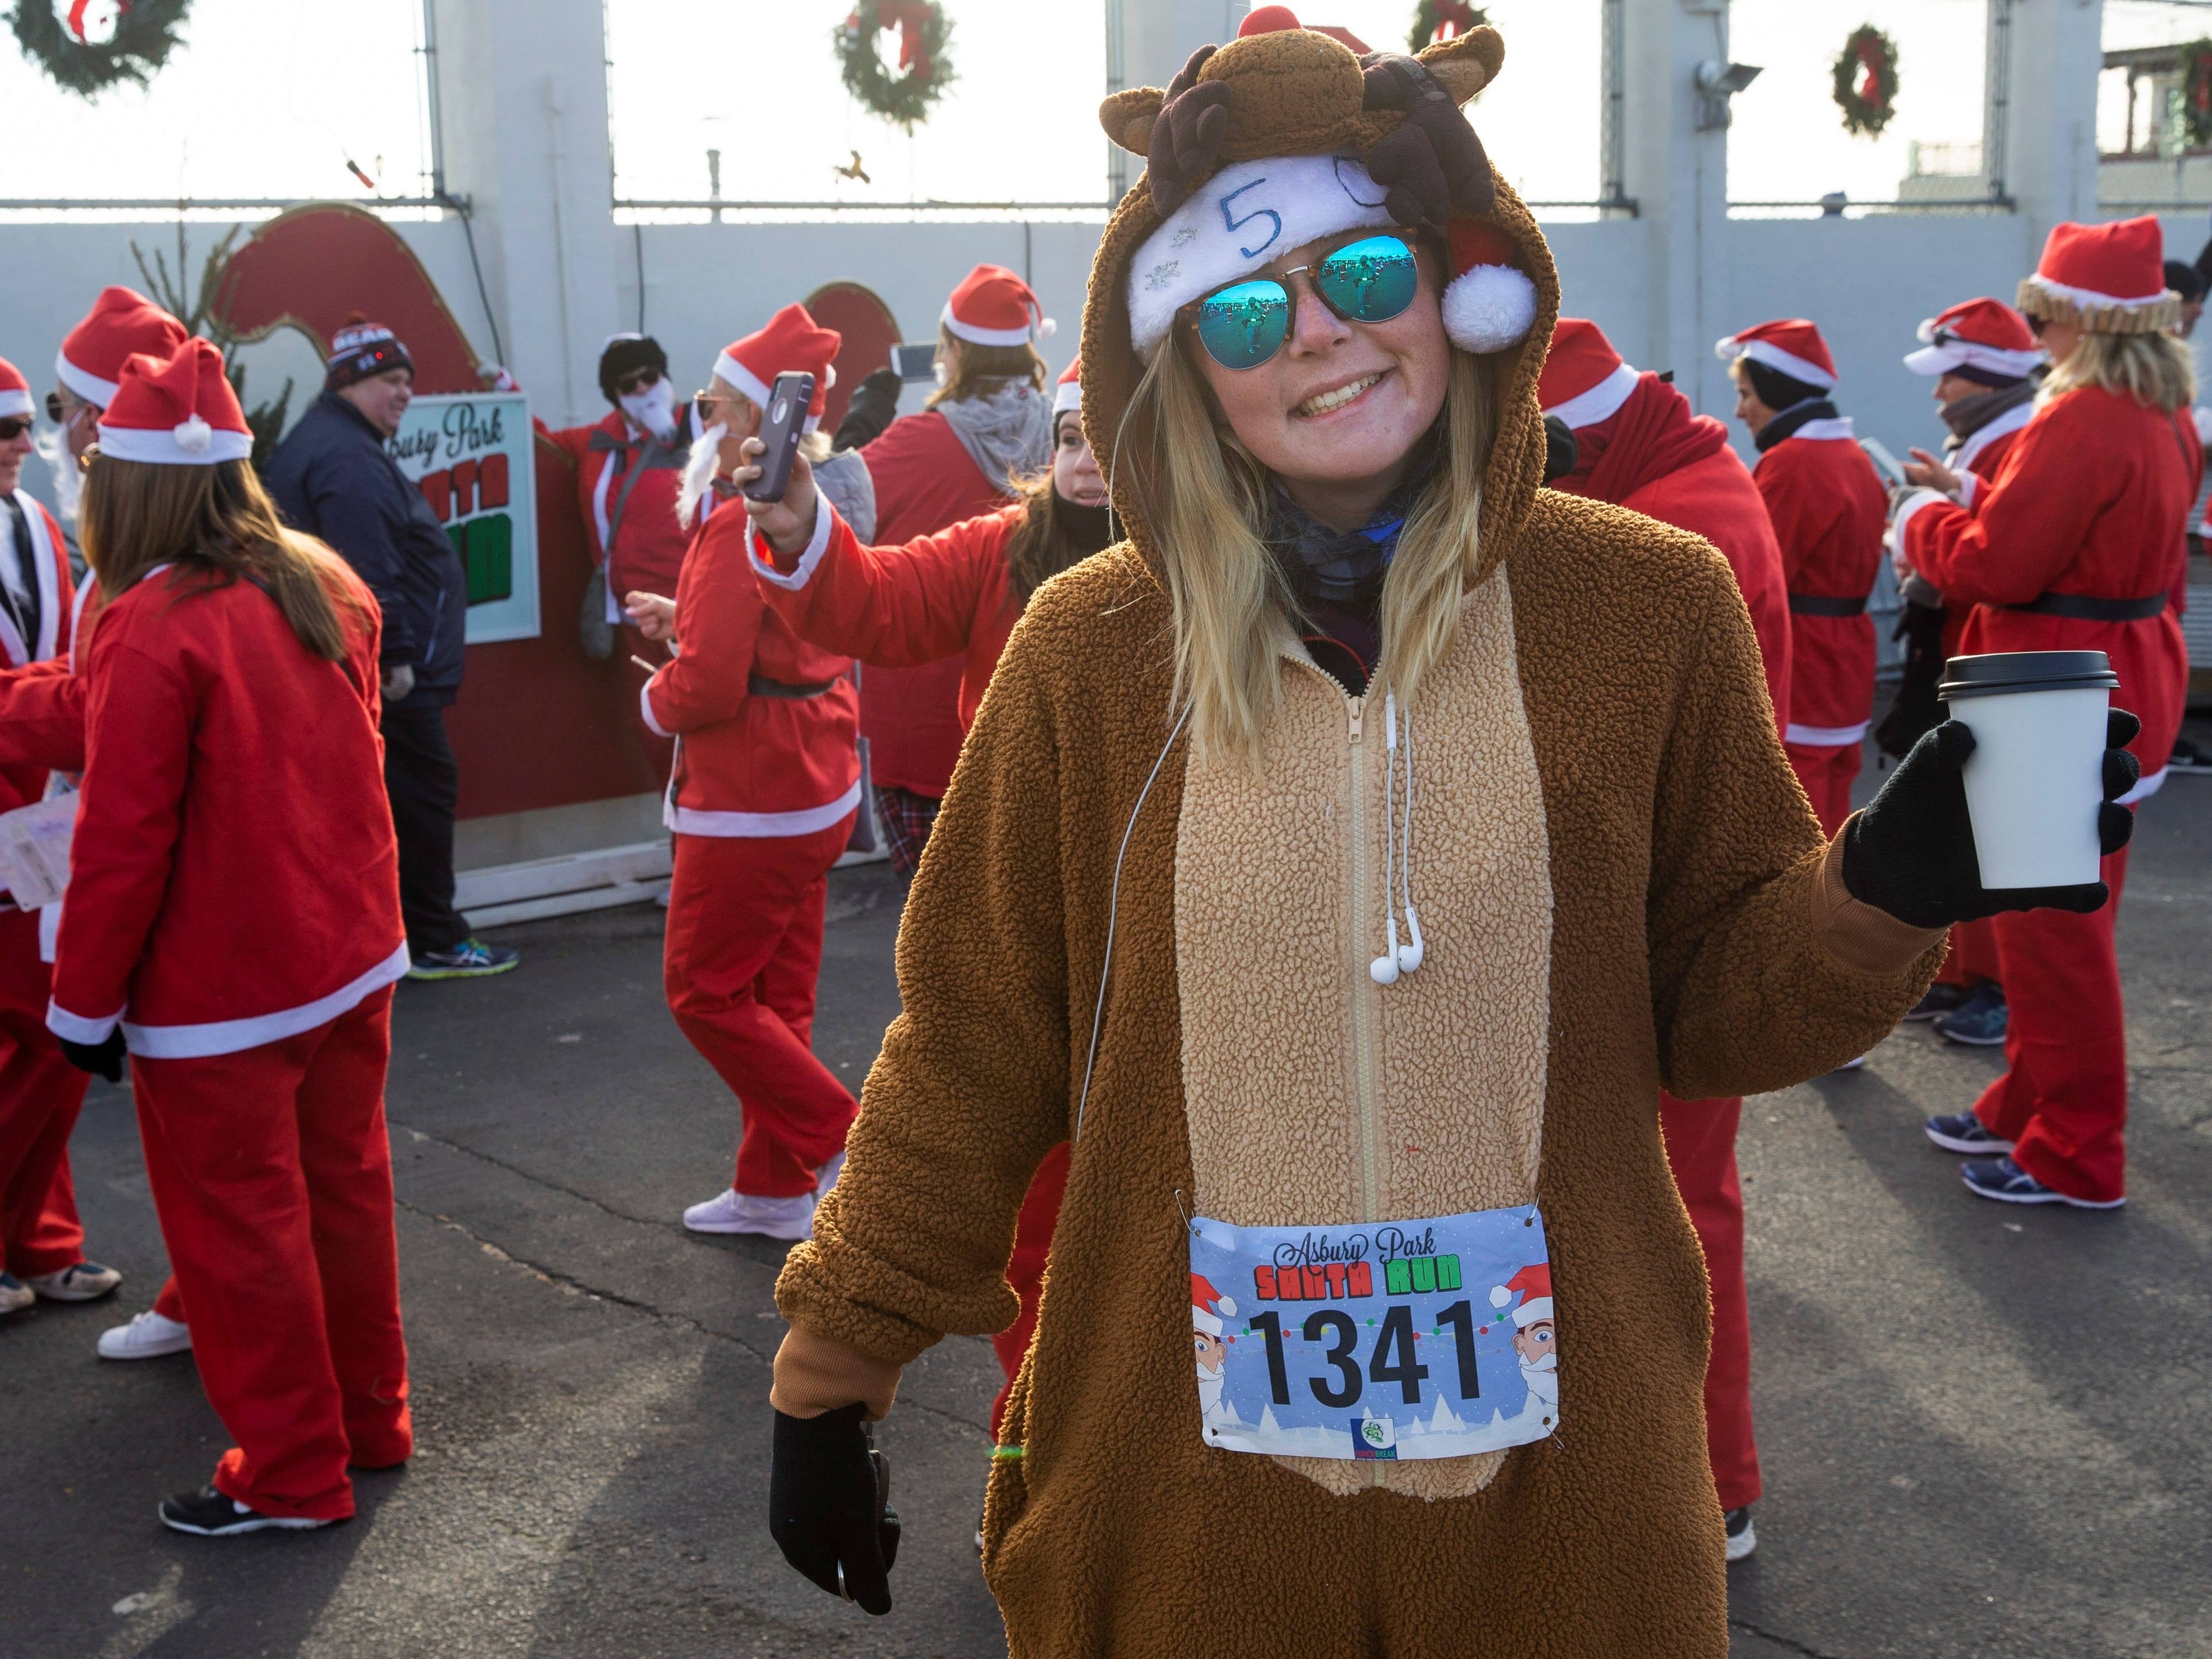 Ceilie Reynolds of Eatontown does the reindeer thing as she participates in run. Runners brave the cold to participate in the annual Santa Run 5K in Asbury Park on December 8, 2018.